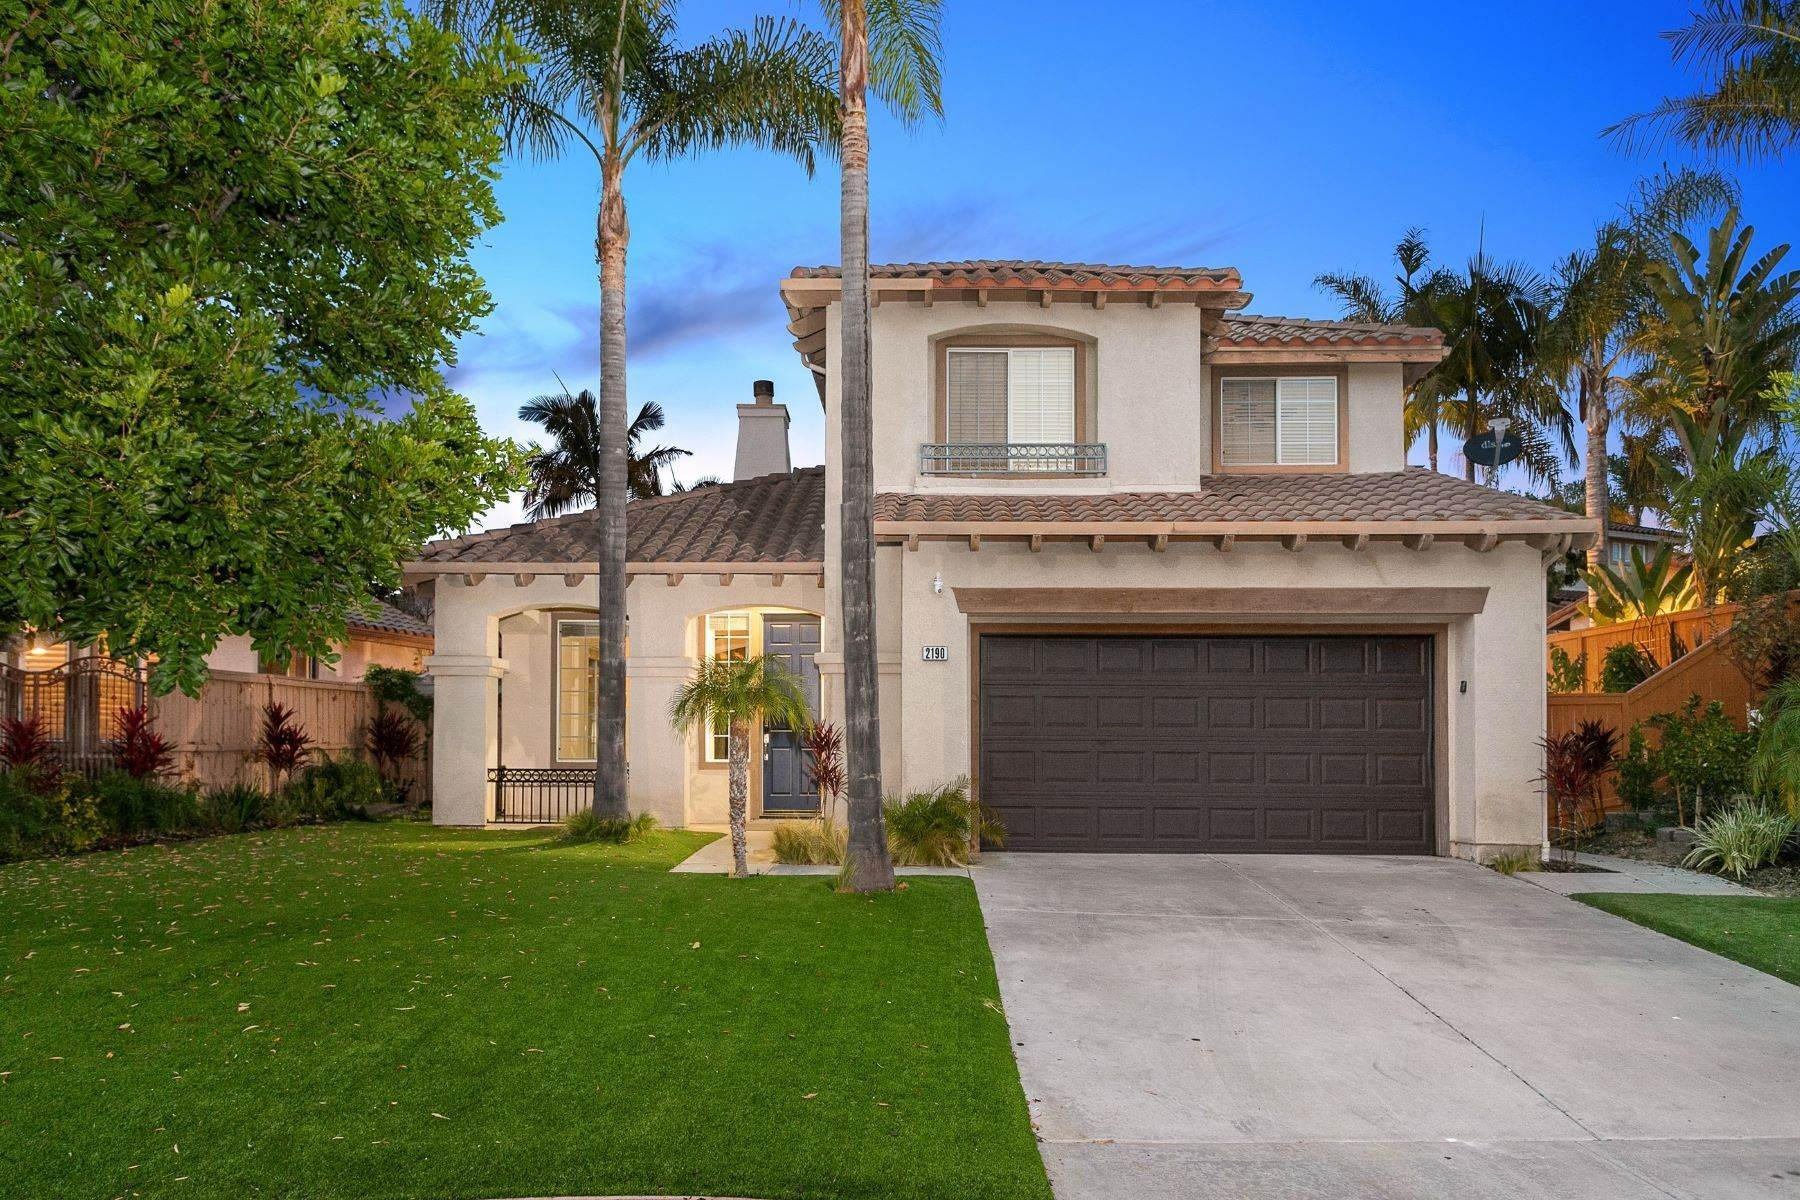 Single Family Homes for Sale at 2190 Avenida Toronja, Carlsbad, CA 92009 2190 Avenida Toronja Carlsbad, California 92009 United States